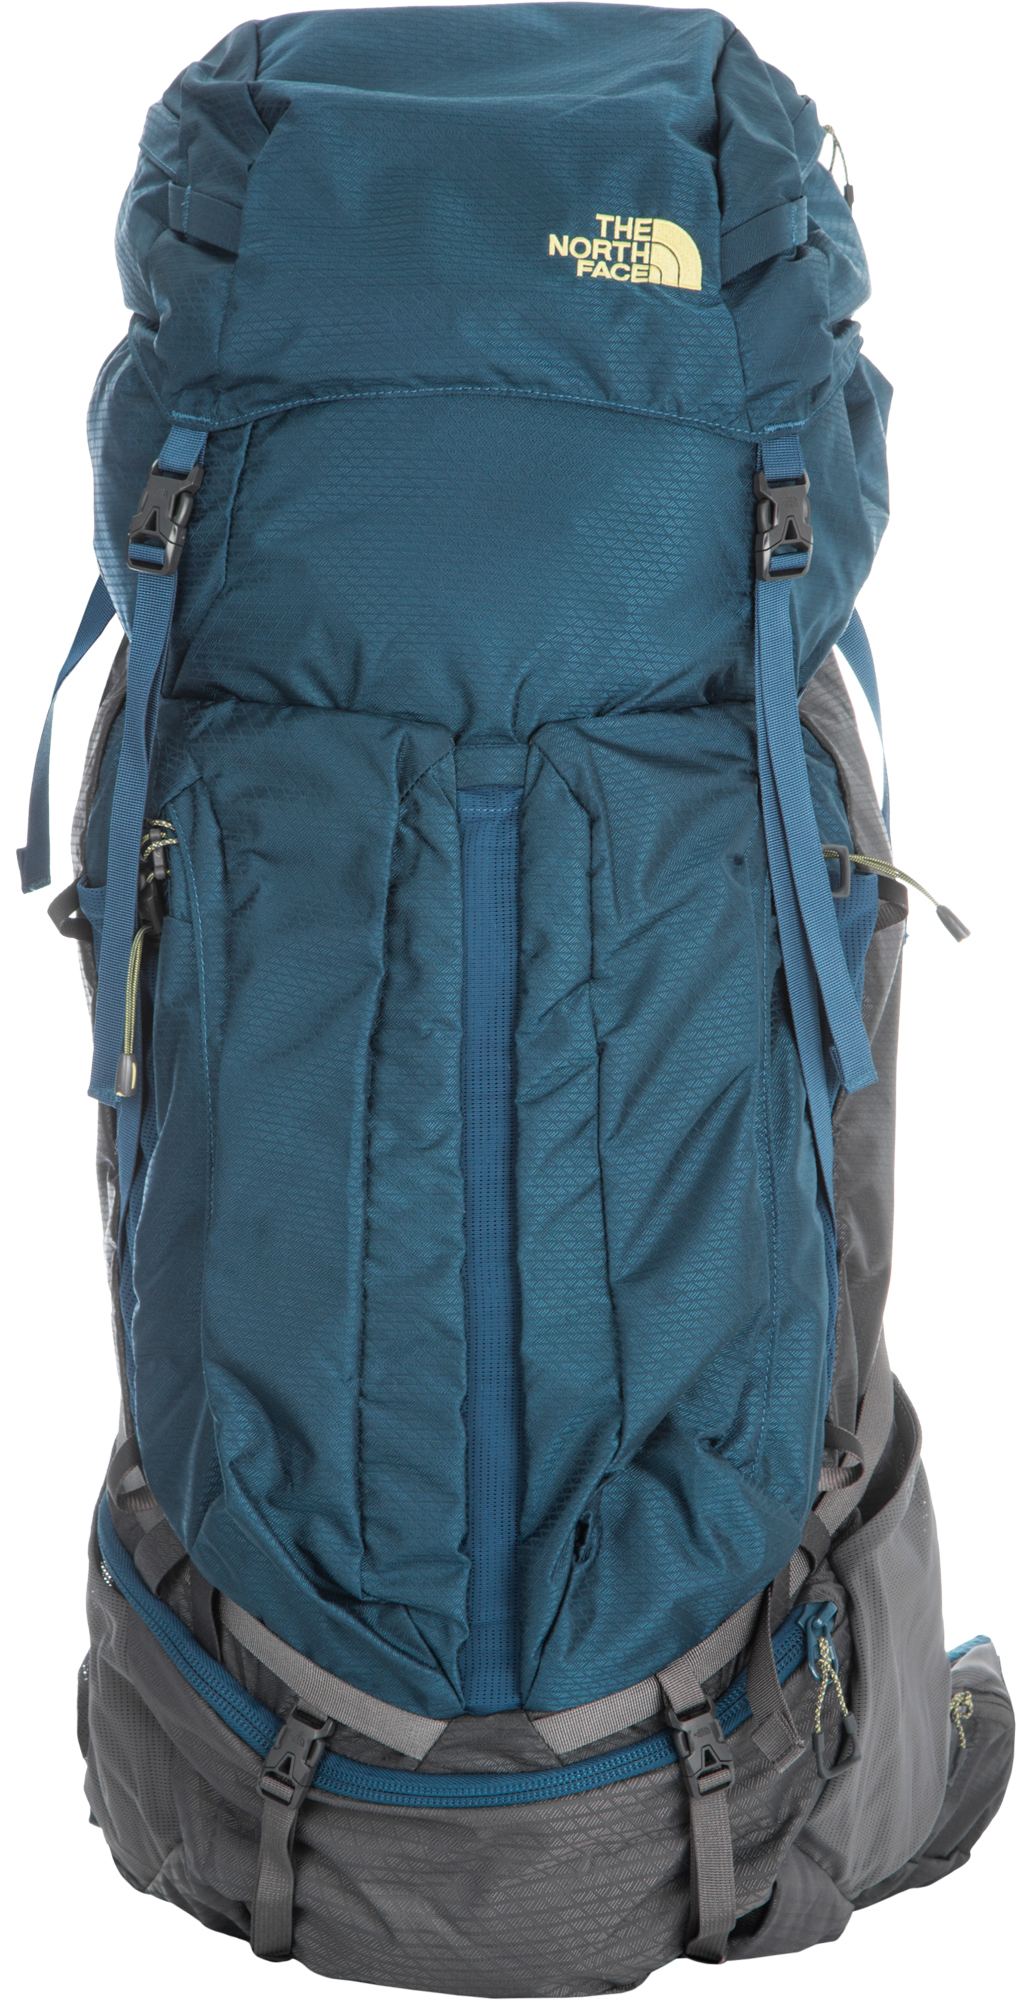 The North Face The North Face Fovero 85 недорого